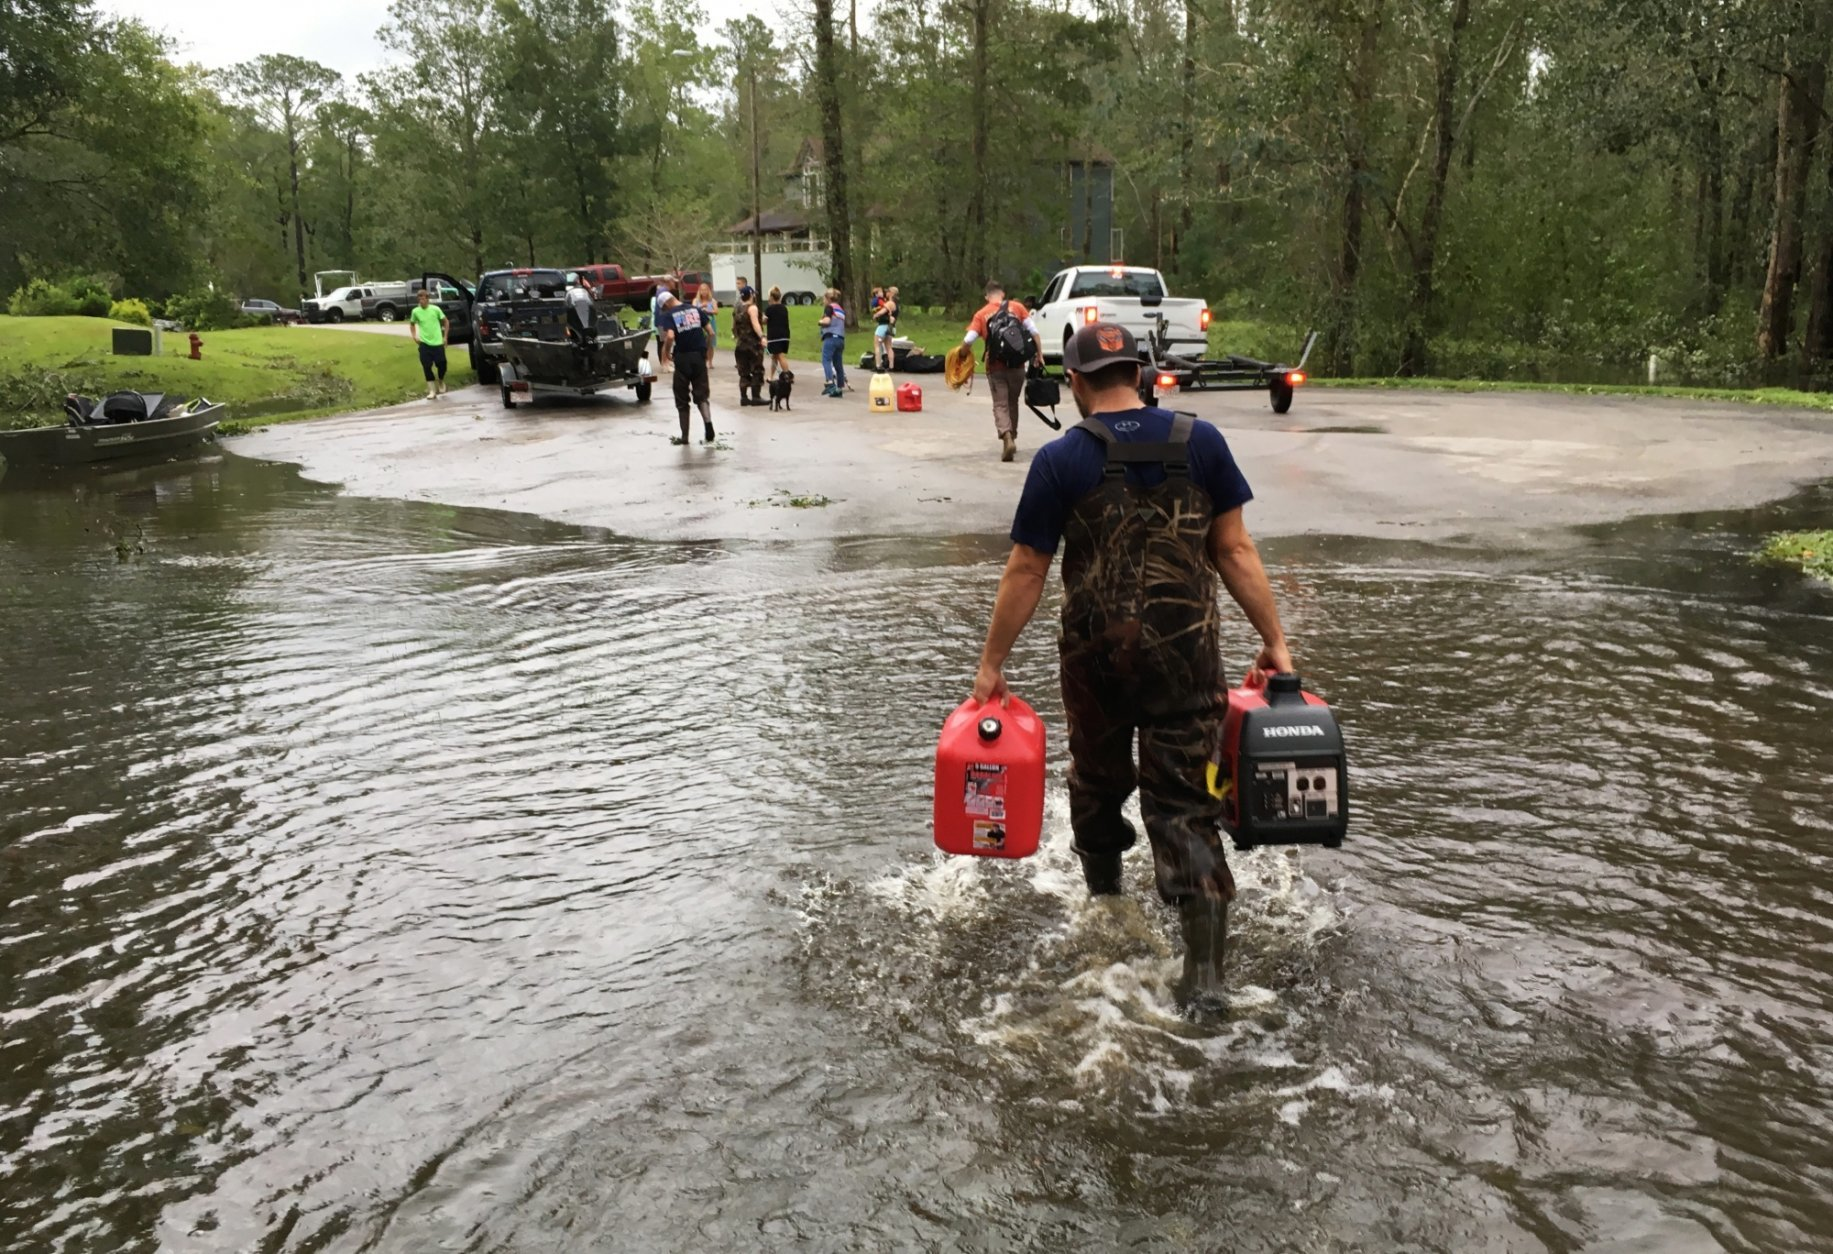 Kevin Knox carries gas and a generator after being rescued from his flooded neighborhood from the effects of Florence, now a tropical storm, in New Bern, N.C., on Saturday, Sept. 15, 2018. (AP Photo/Allen G. Breed)